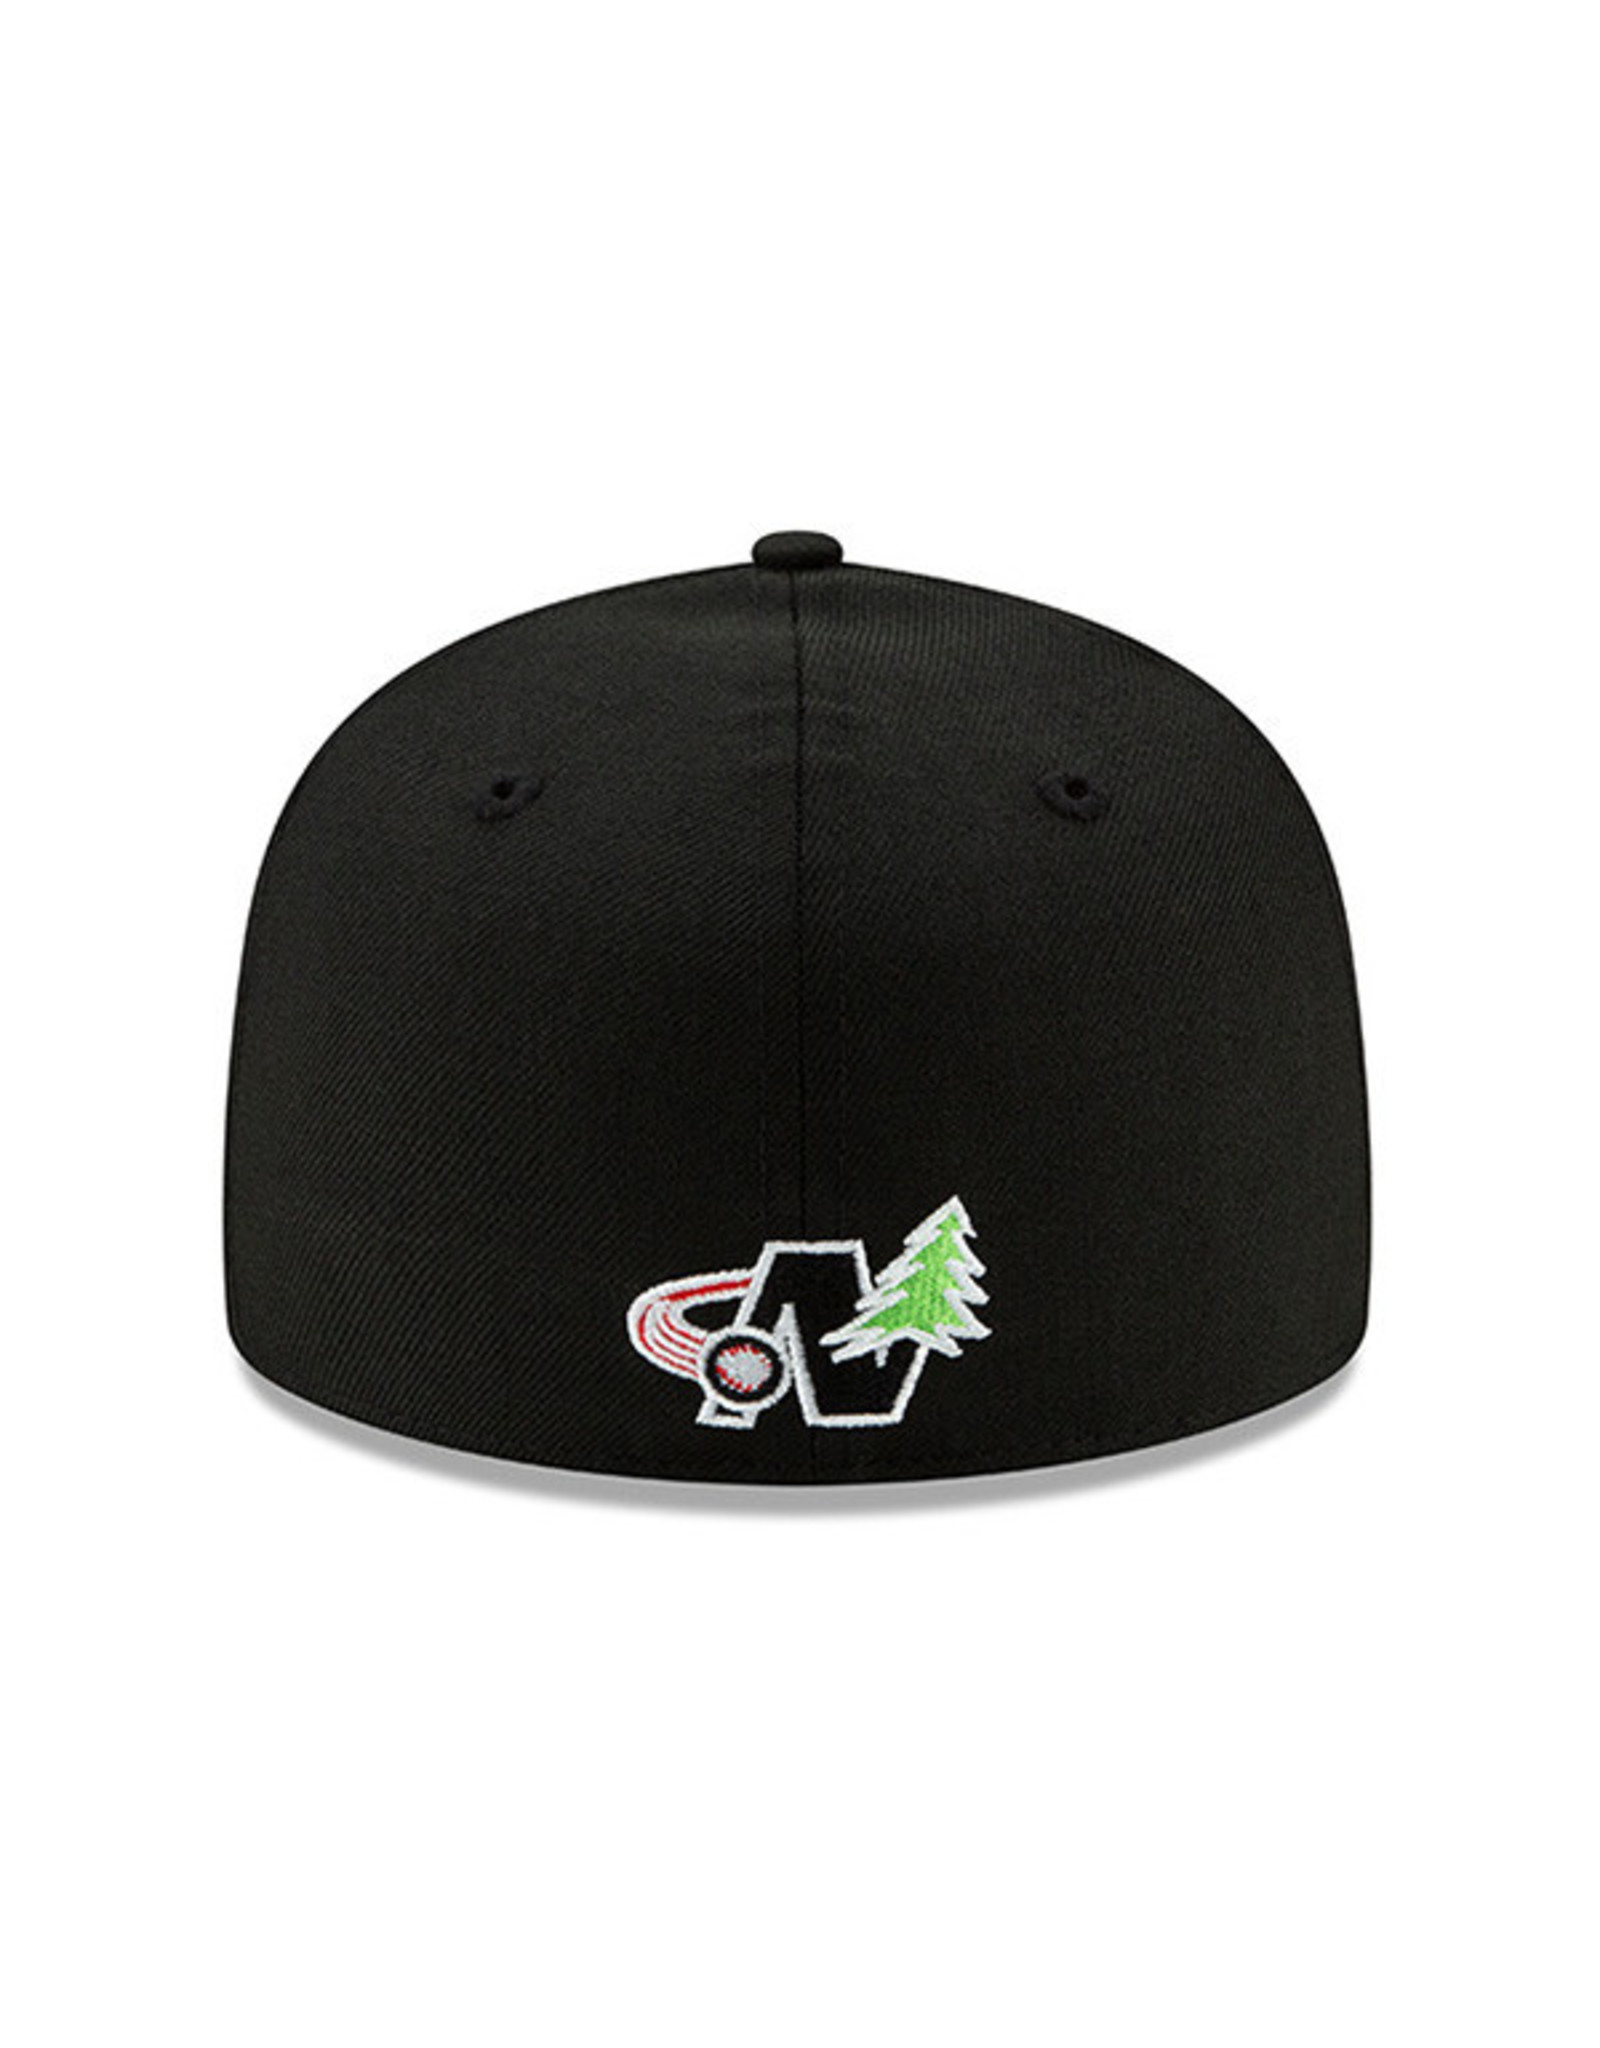 New Era 1000 59Fifty Fitted Black Cap